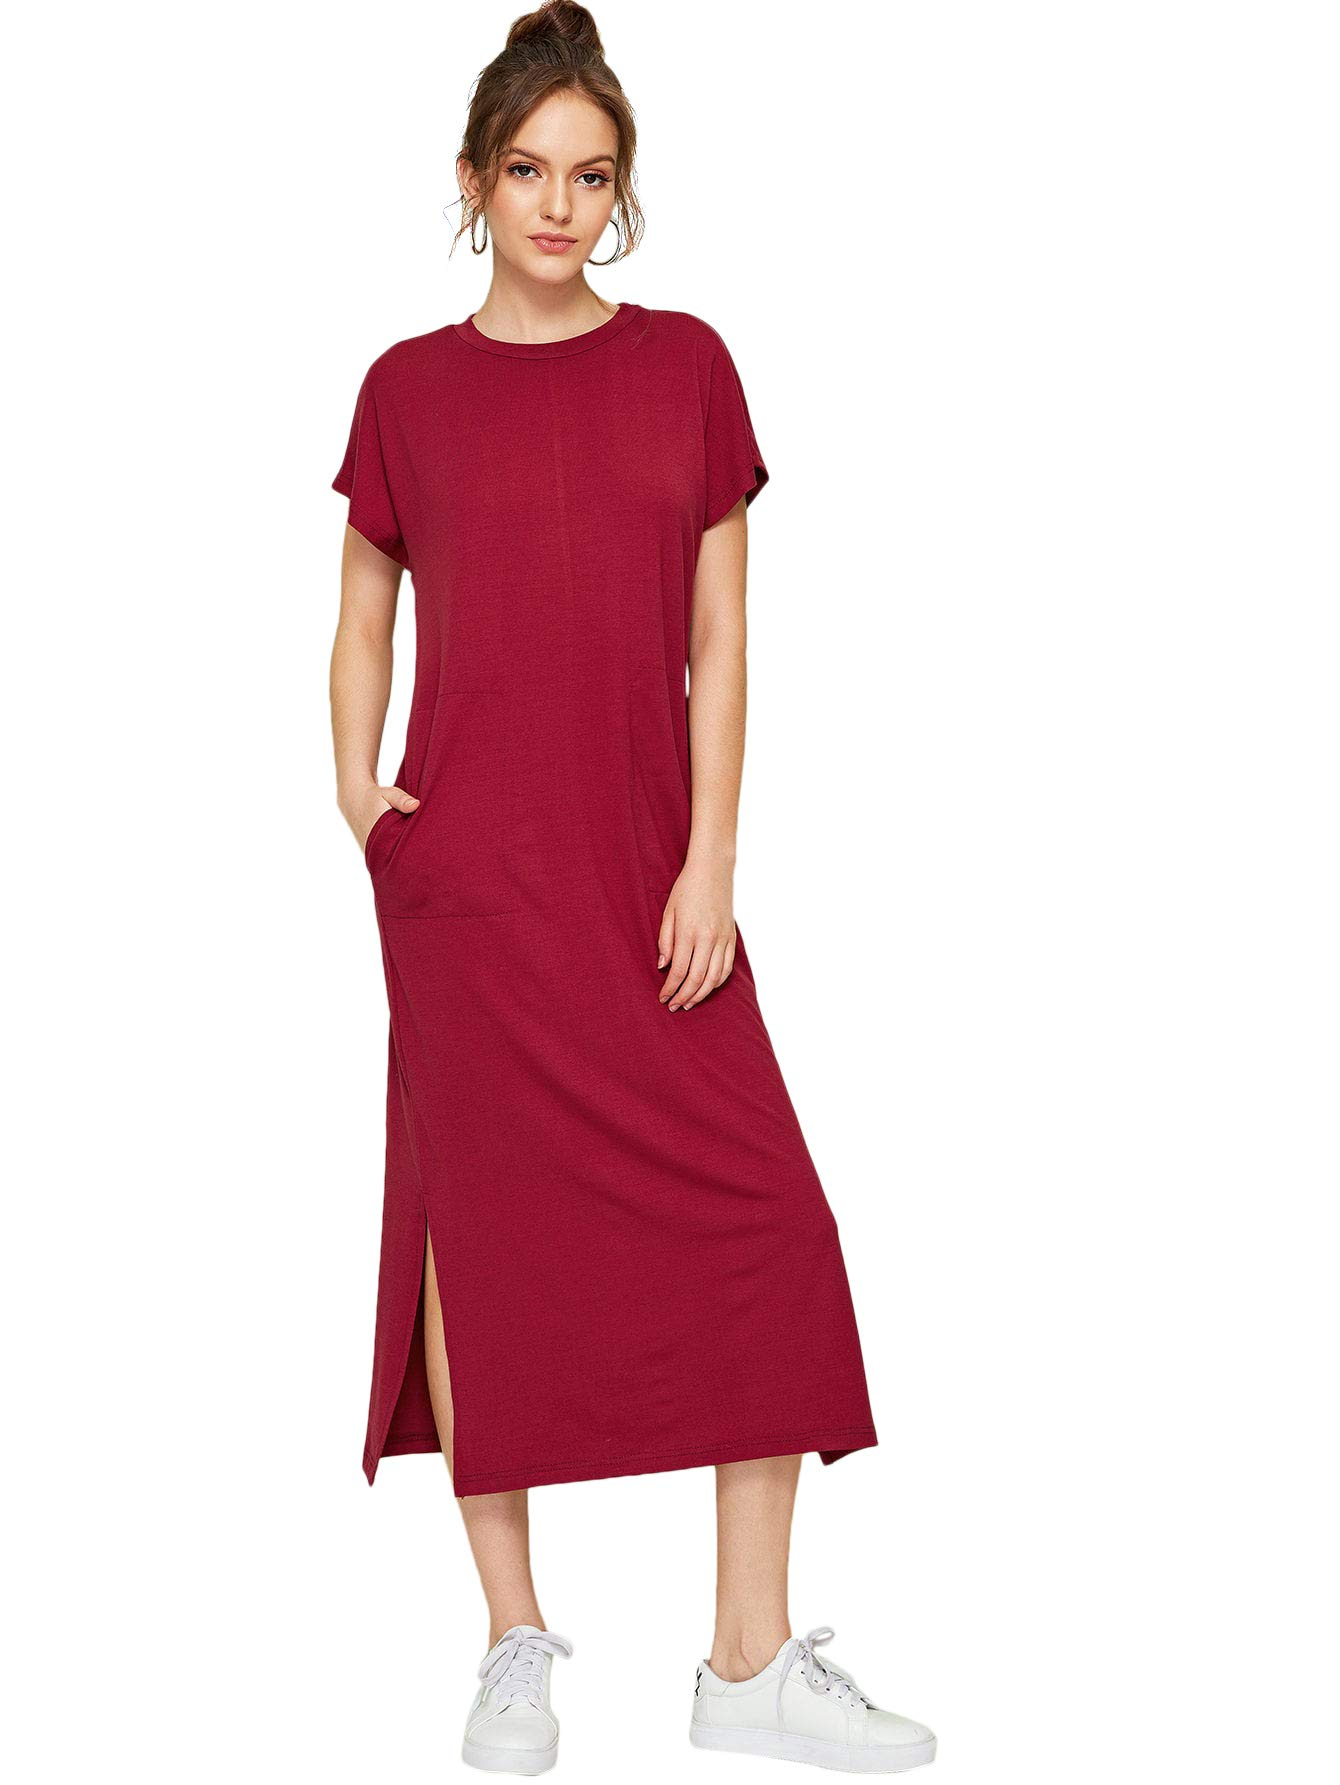 2ce2e07cebf70 Romwe Women's Casual Loose Solid Short Sleeve Round Neck Maxi Dress  Burgundy# XL